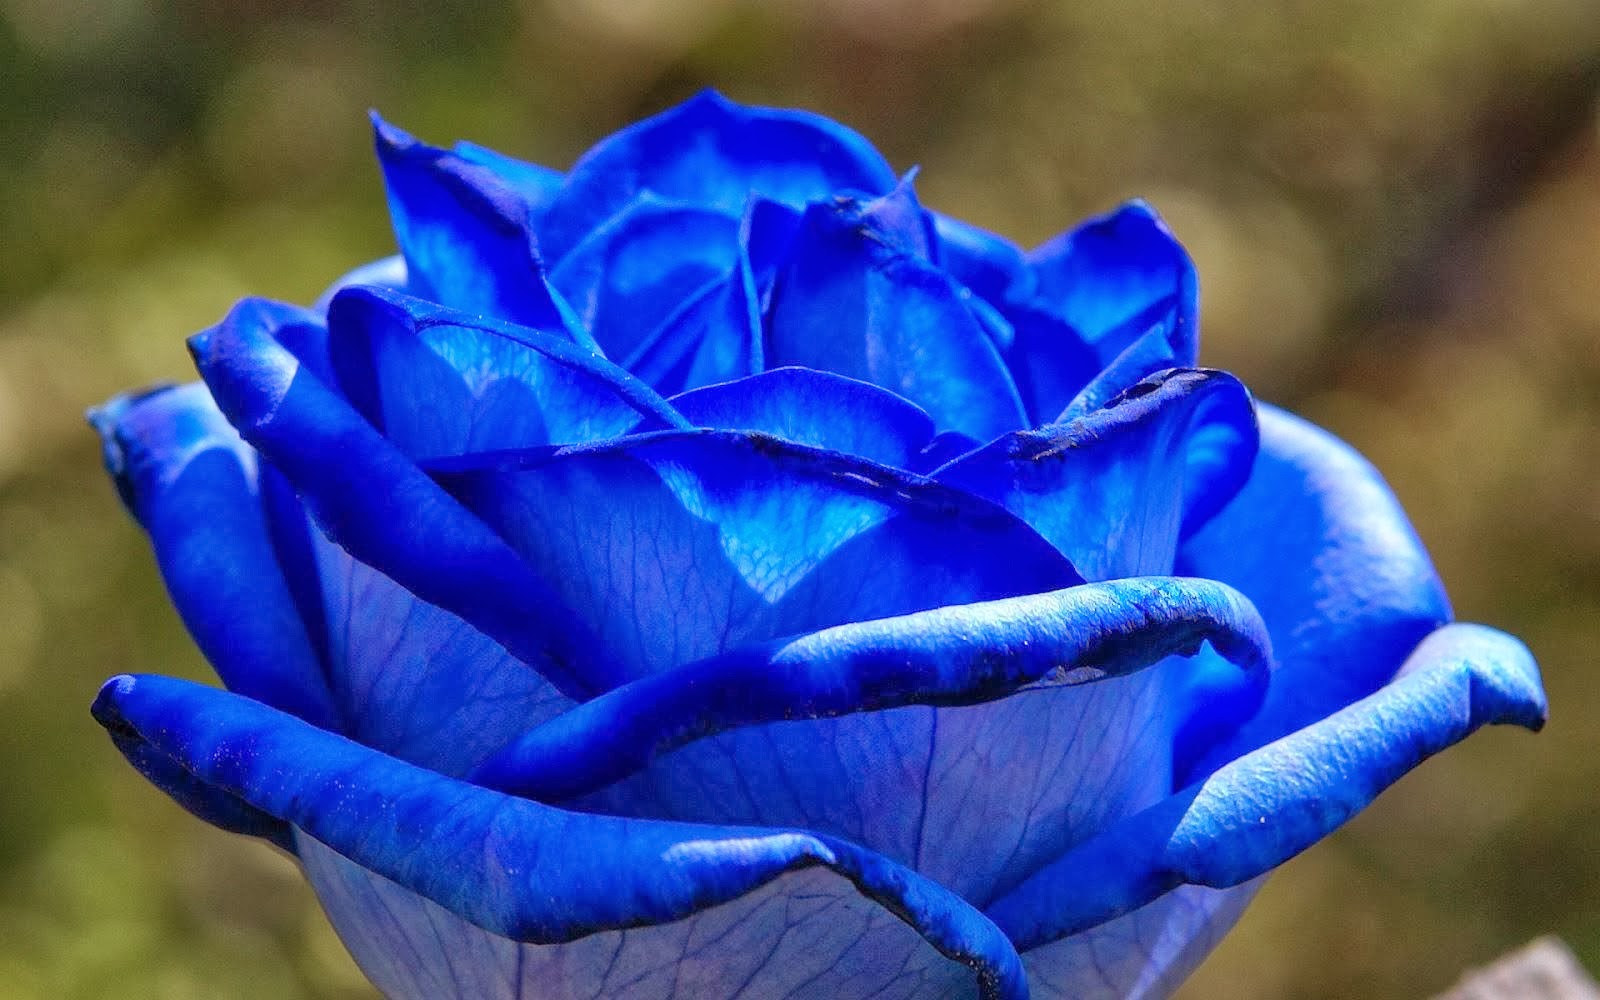 blue rose wallpapers - hd desktop wallpapers | 4k hd